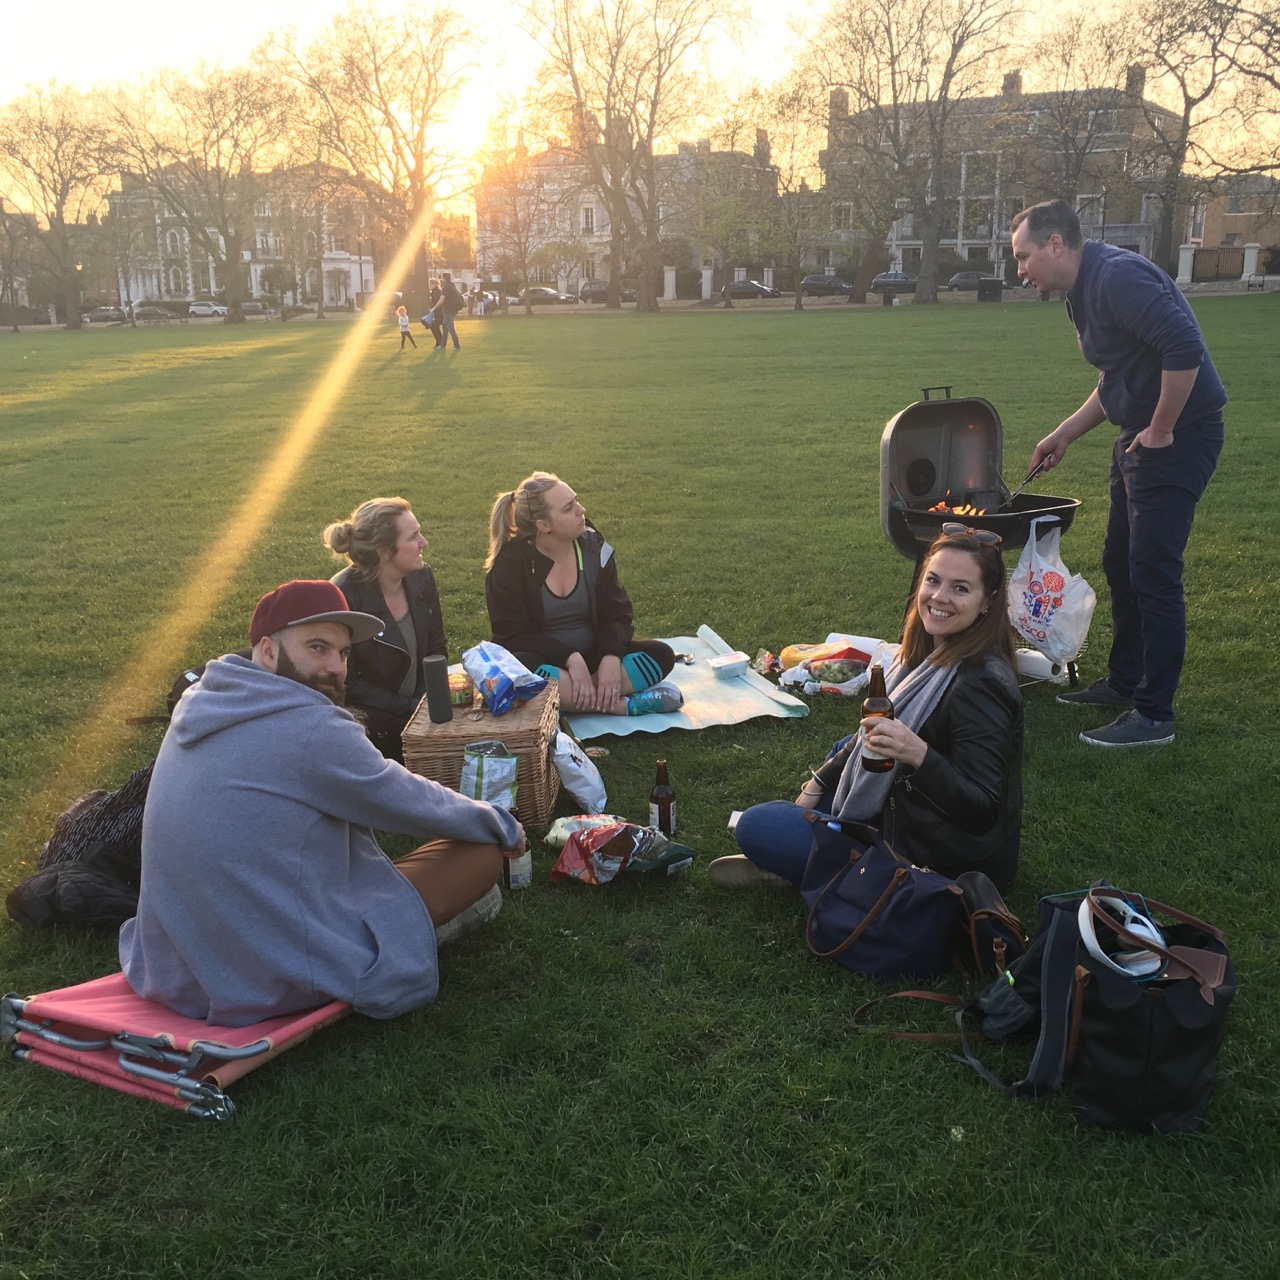 Picnic, Highbury Fields, London